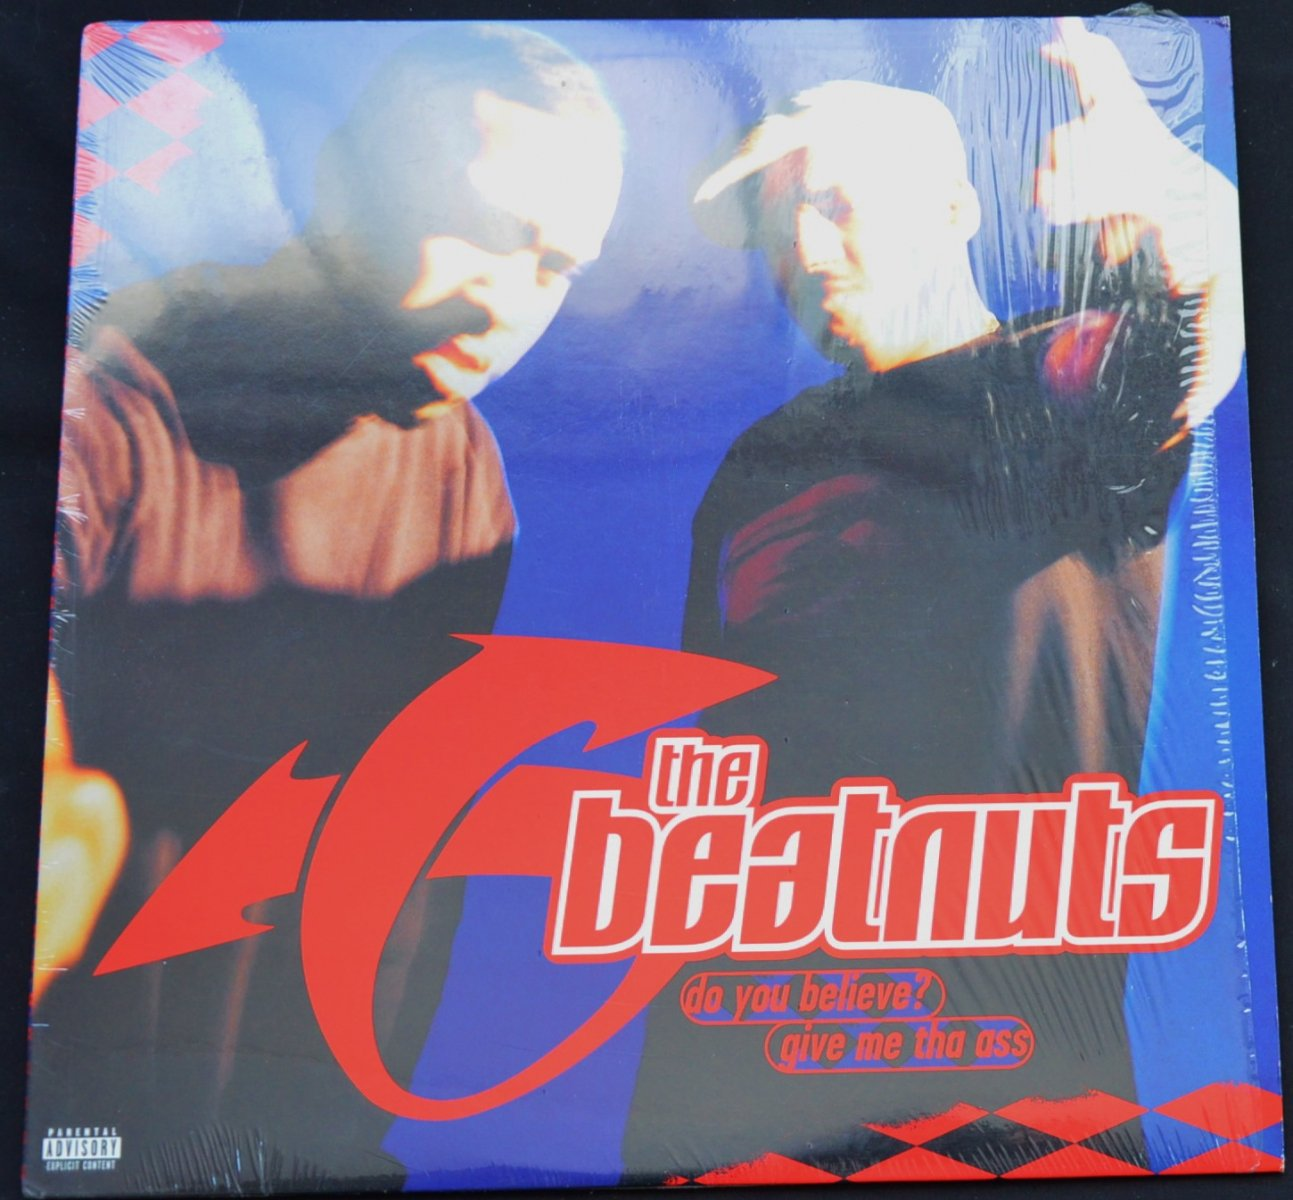 THE BEATNUTS / DO YOU BELIEVE? / GIVE ME THA ASS (12